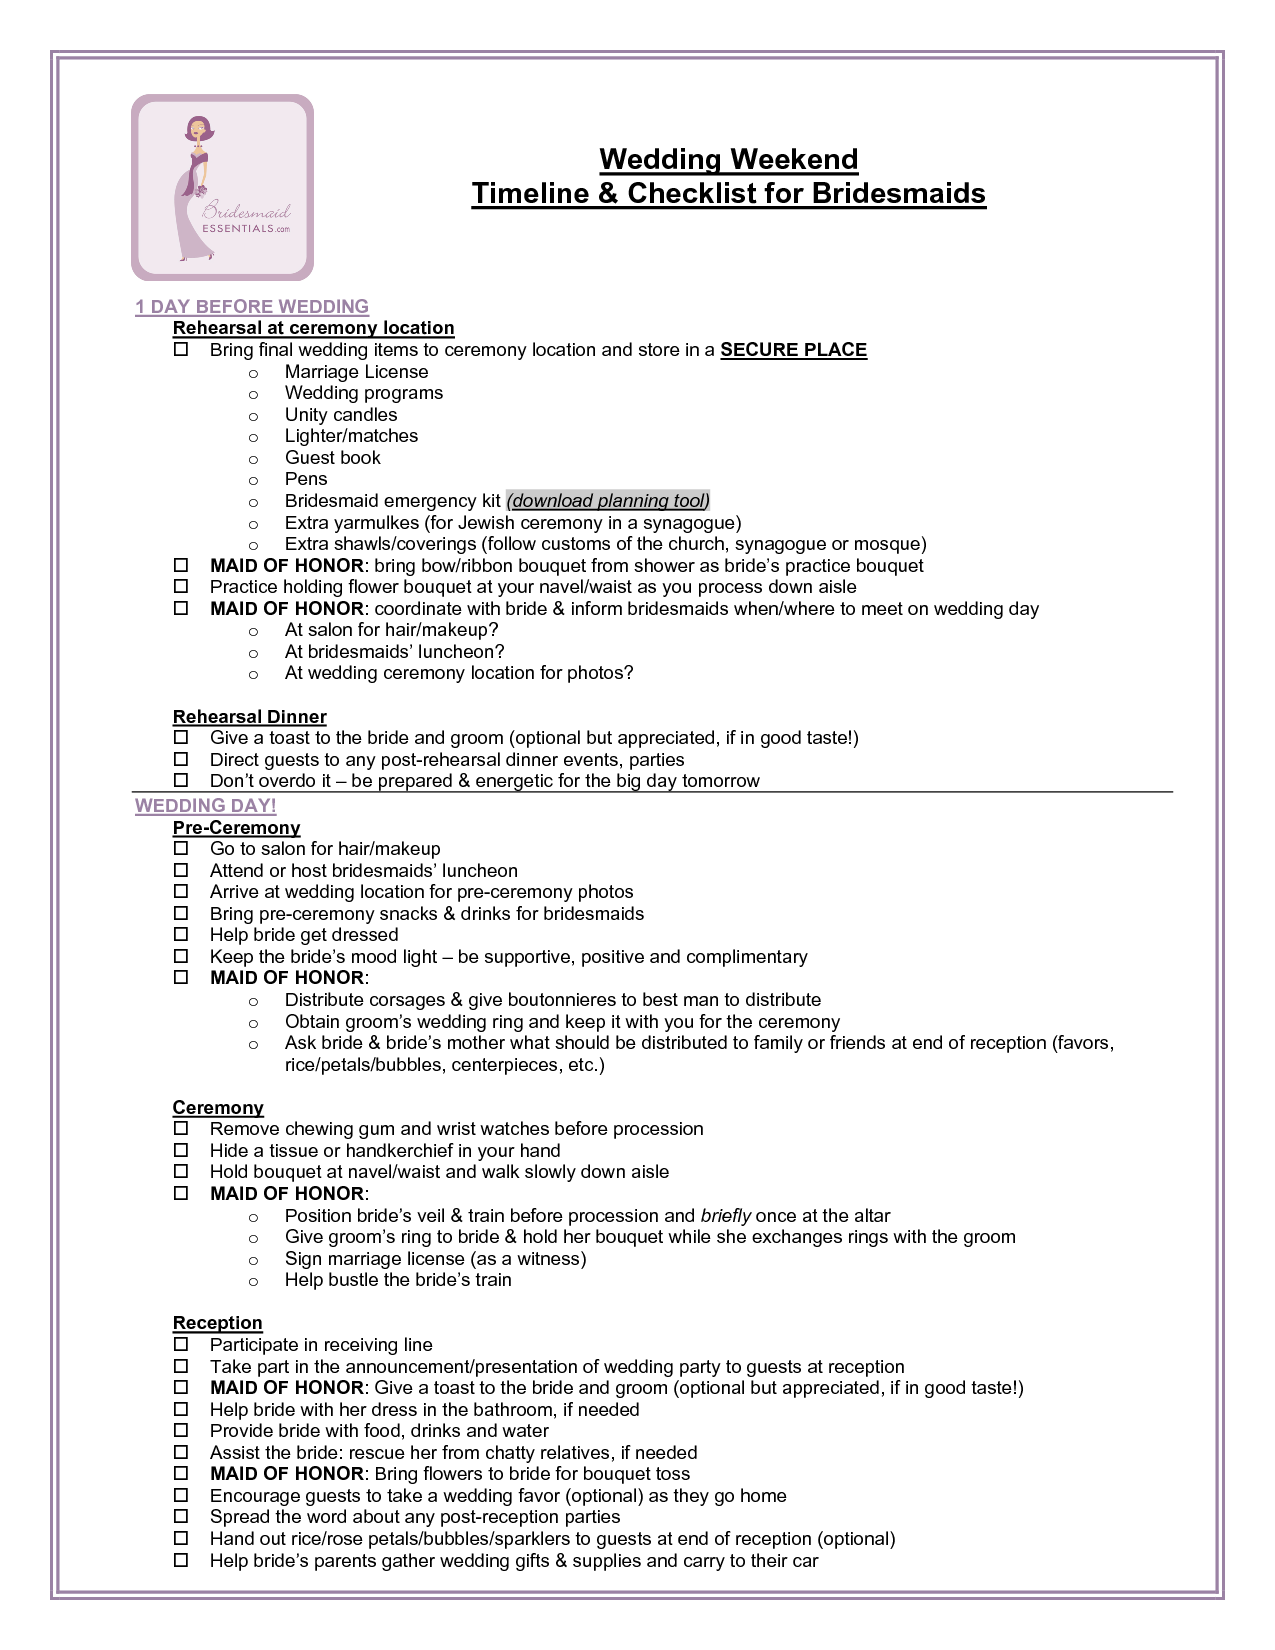 conference checklist and timeline bridesmaid wedding weekend